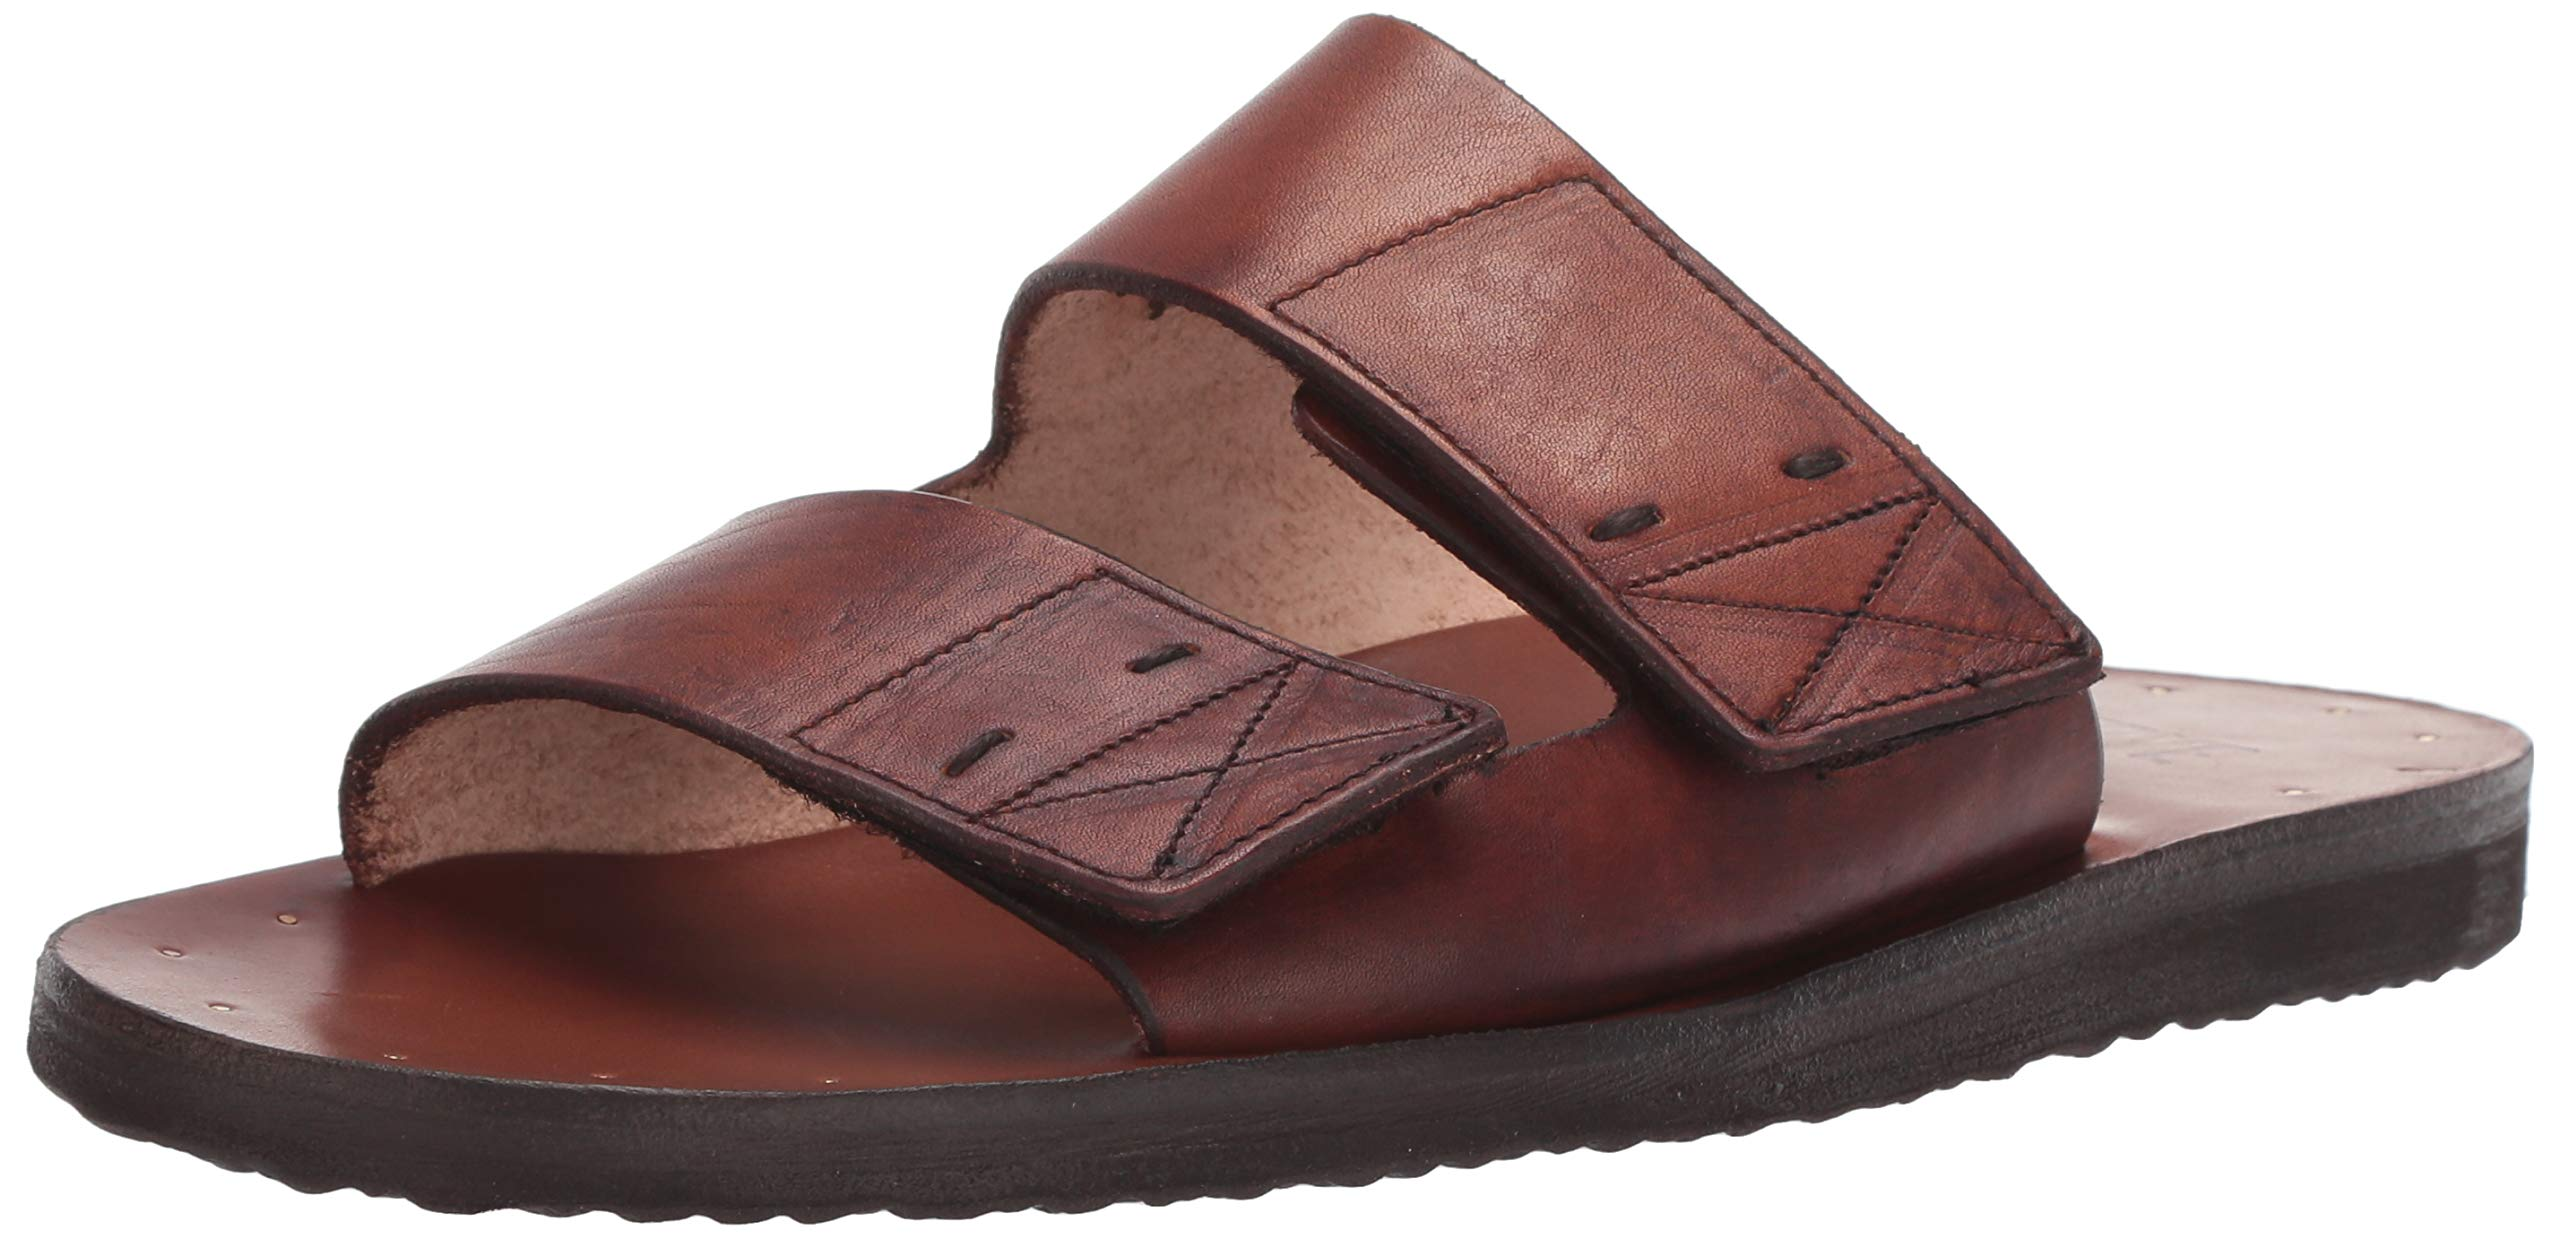 FRYE Men's Cape Double Band Slide Sandal, Cognac, 11 M M US